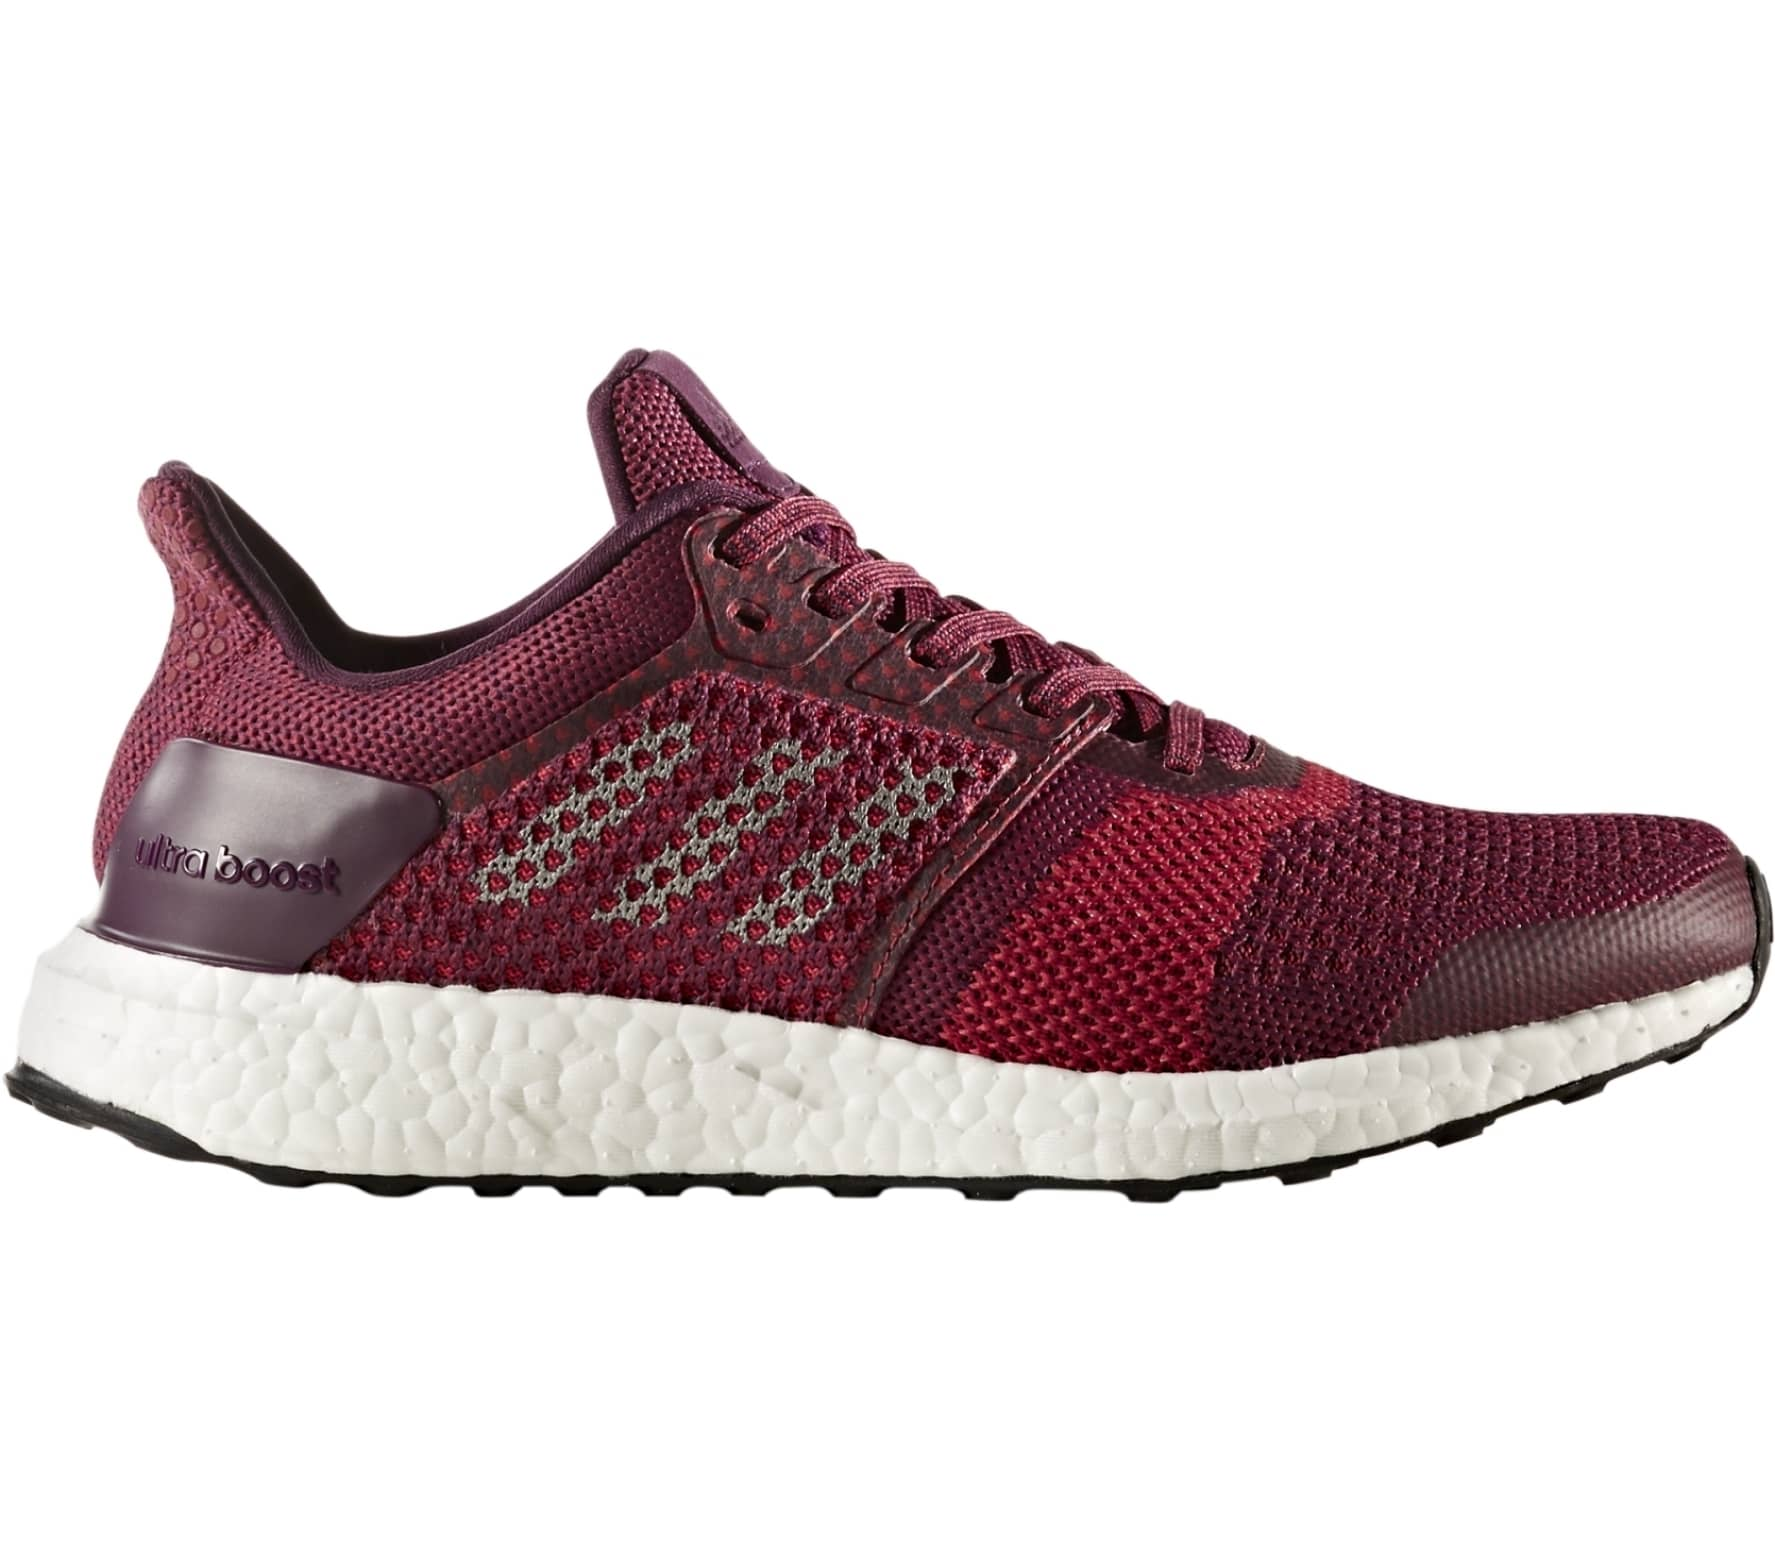 cb0faf2c2 Adidas - Ultra Boost ST women s running shoes (dark red black) - buy ...